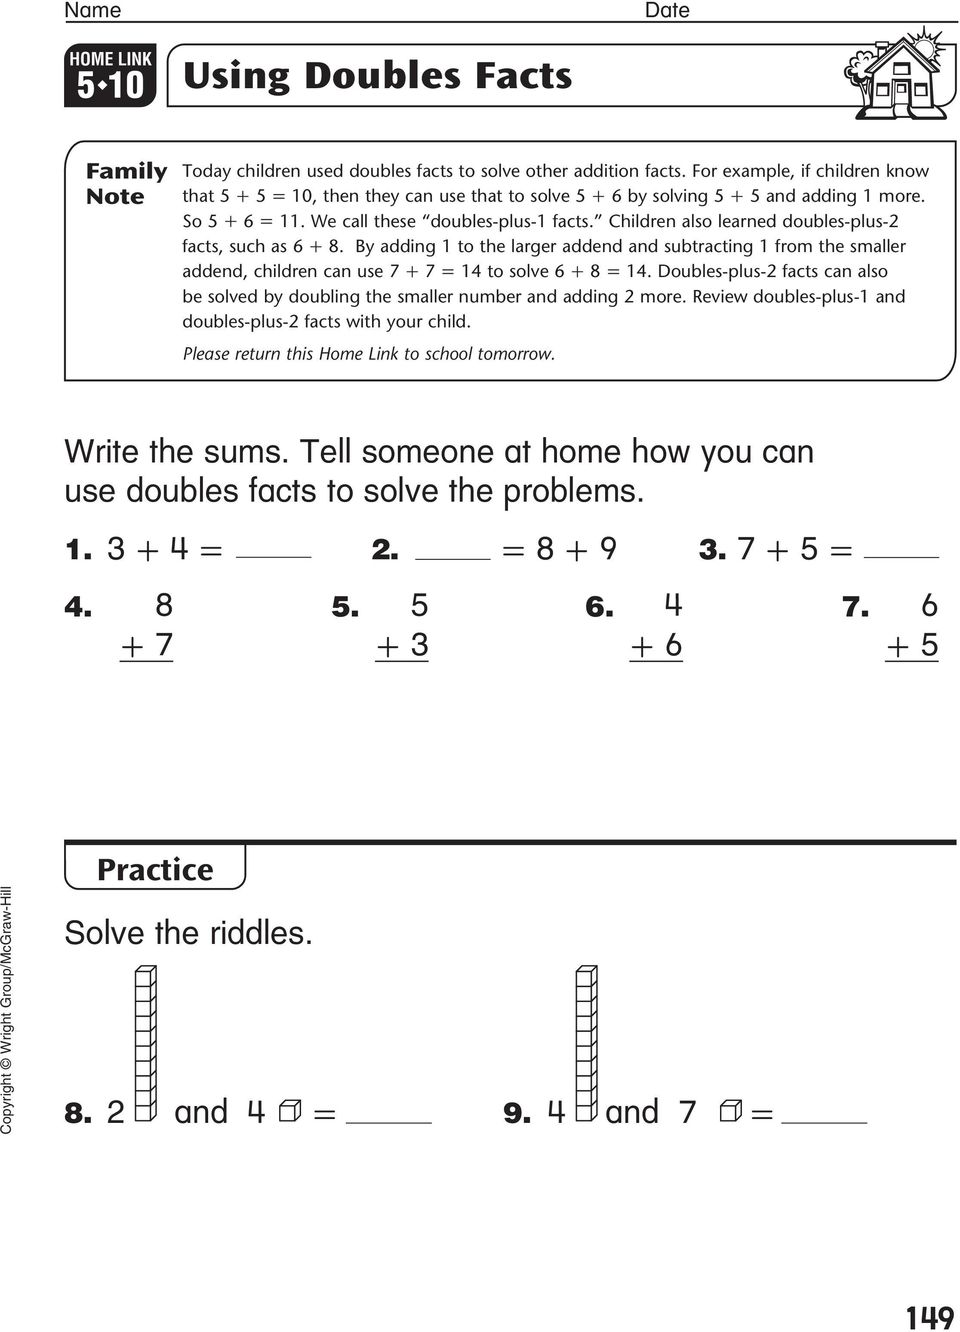 Children also learned doubles-plus-2 facts, such as 6 + 8. By adding 1 to the larger addend and subtracting 1 from the smaller addend, children can use 7 + 7 = 14 to solve 6 + 8 = 14.